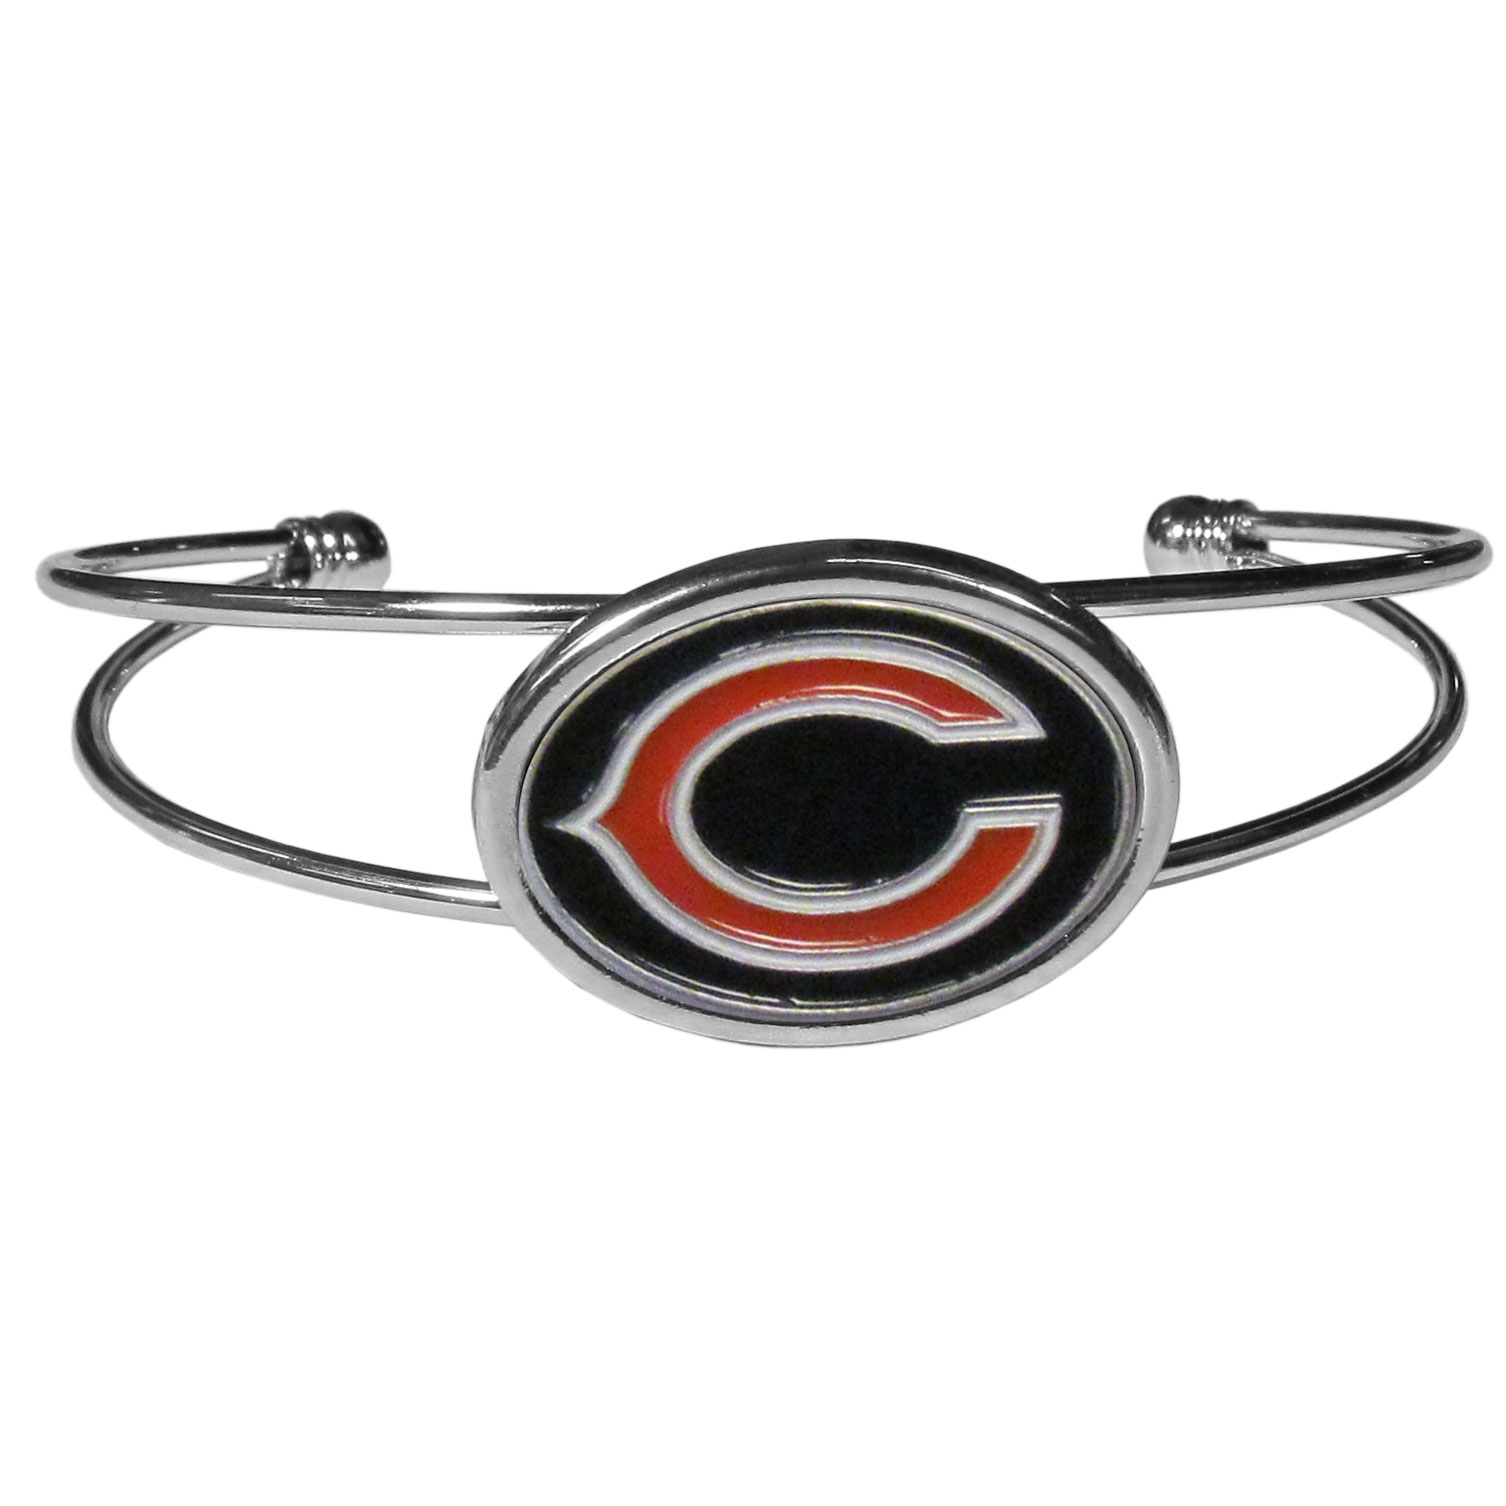 Chicago Bears Cuff Bracelet - These comfortable and fashionable double-bar cuff bracelets feature a 1 inch metal Chicago Bears inset logo with enameled detail.